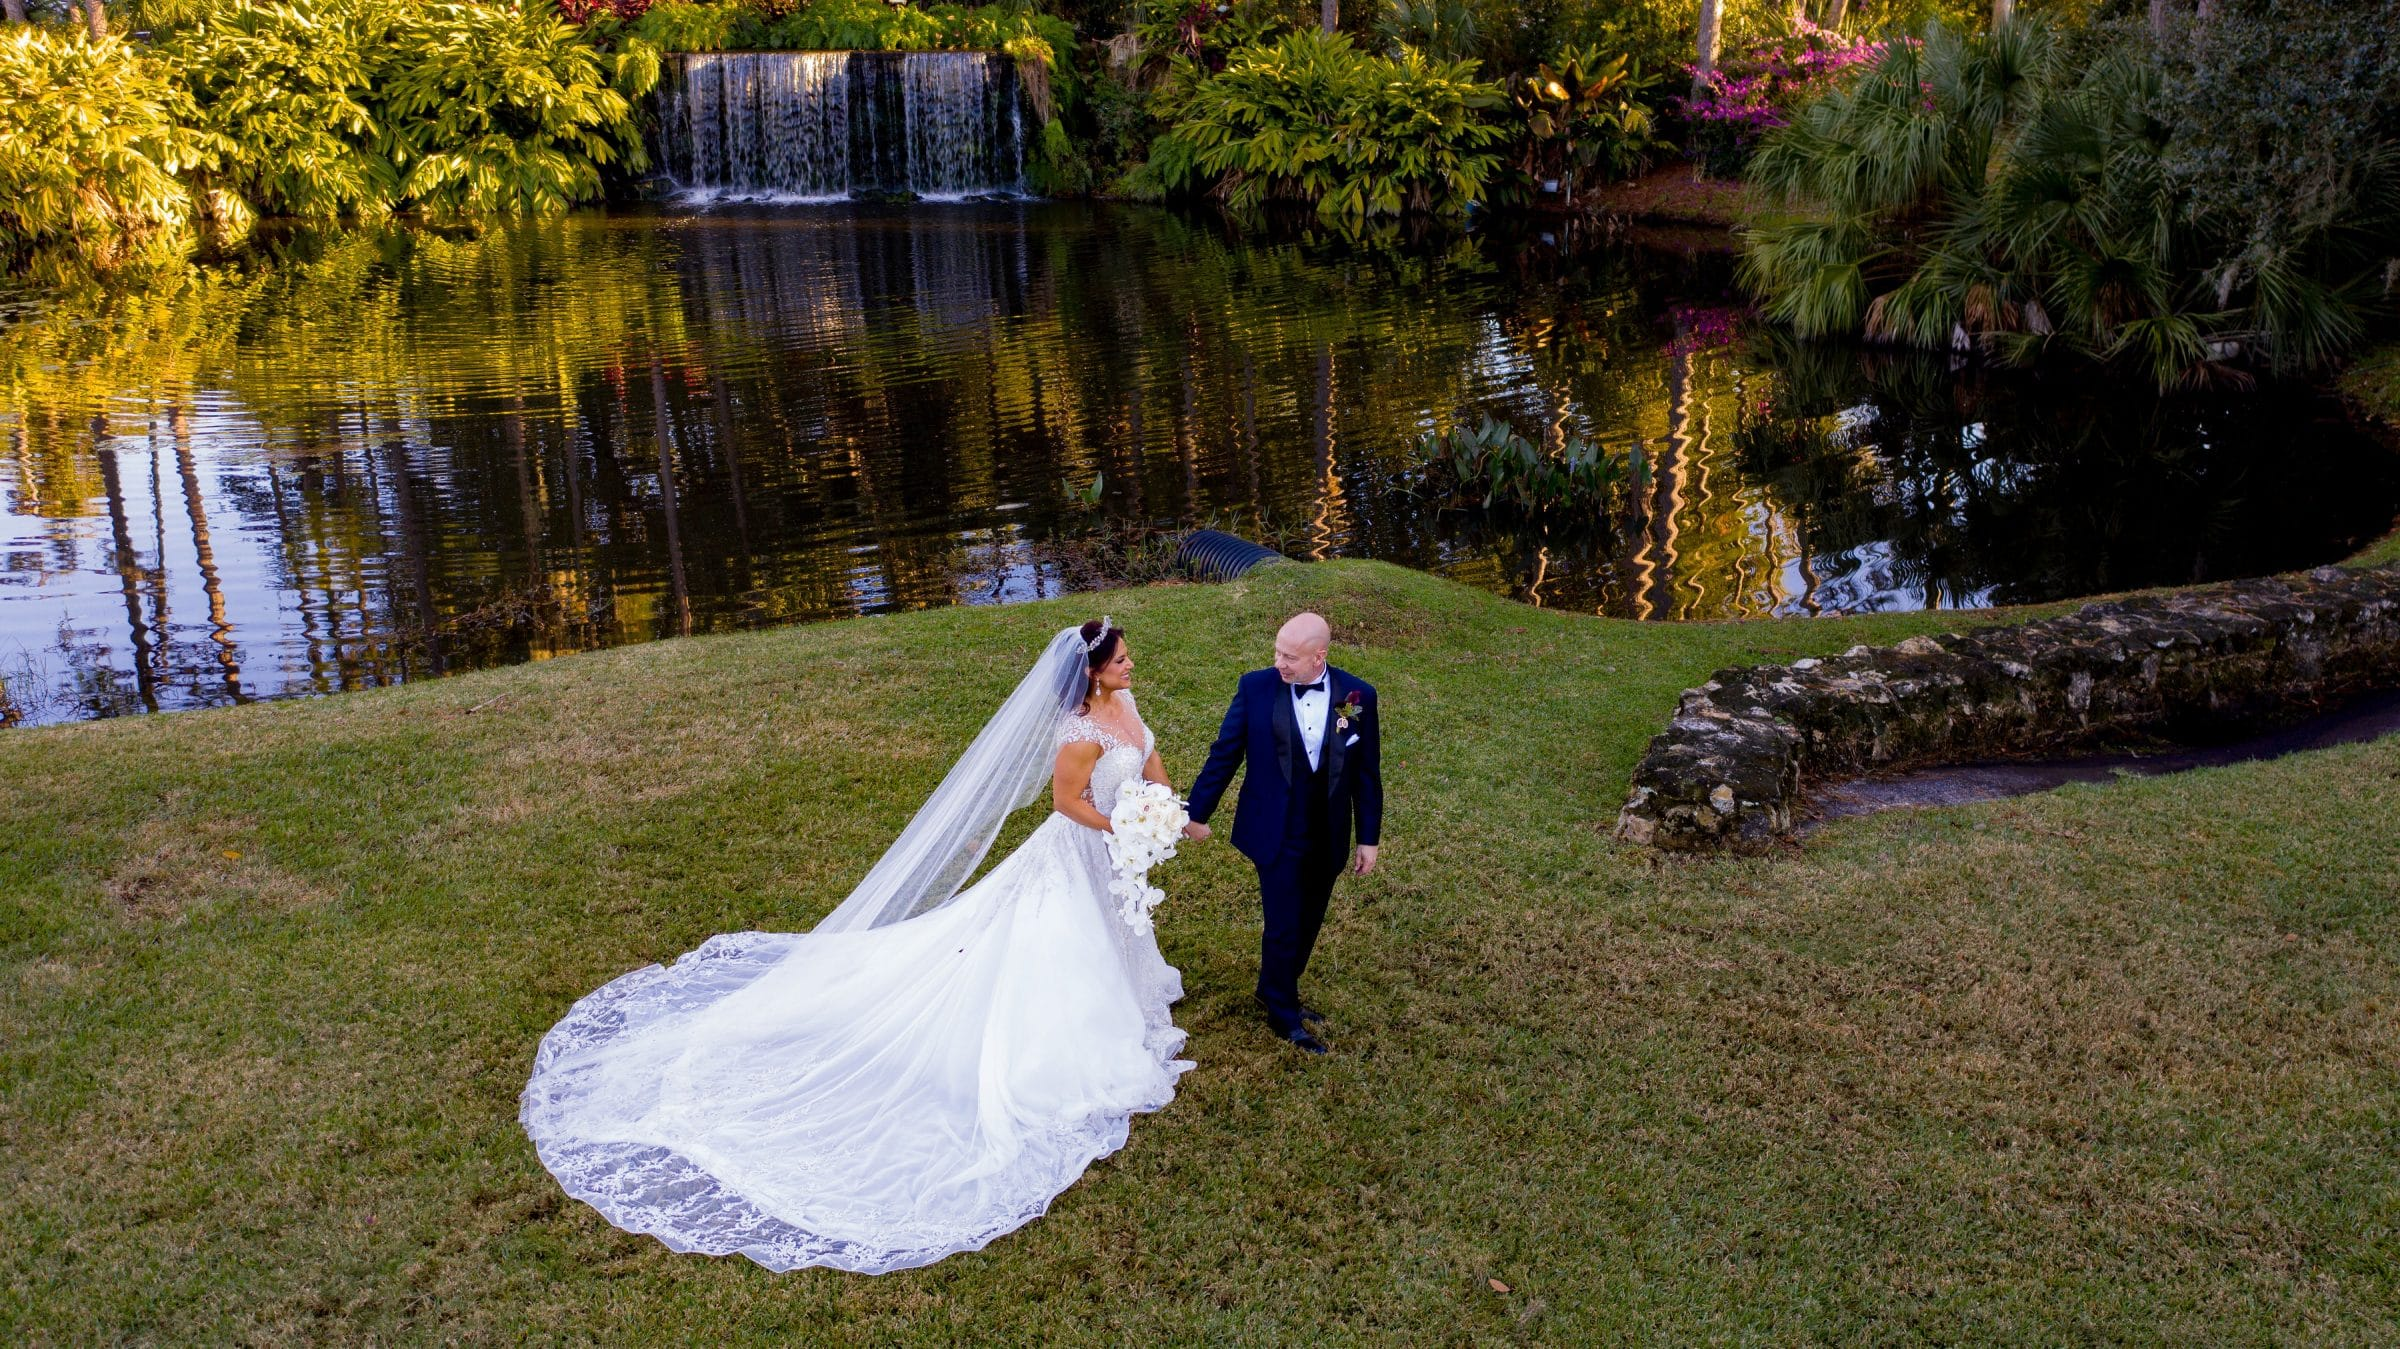 Bride and Groom at Mission Inn Waterfall